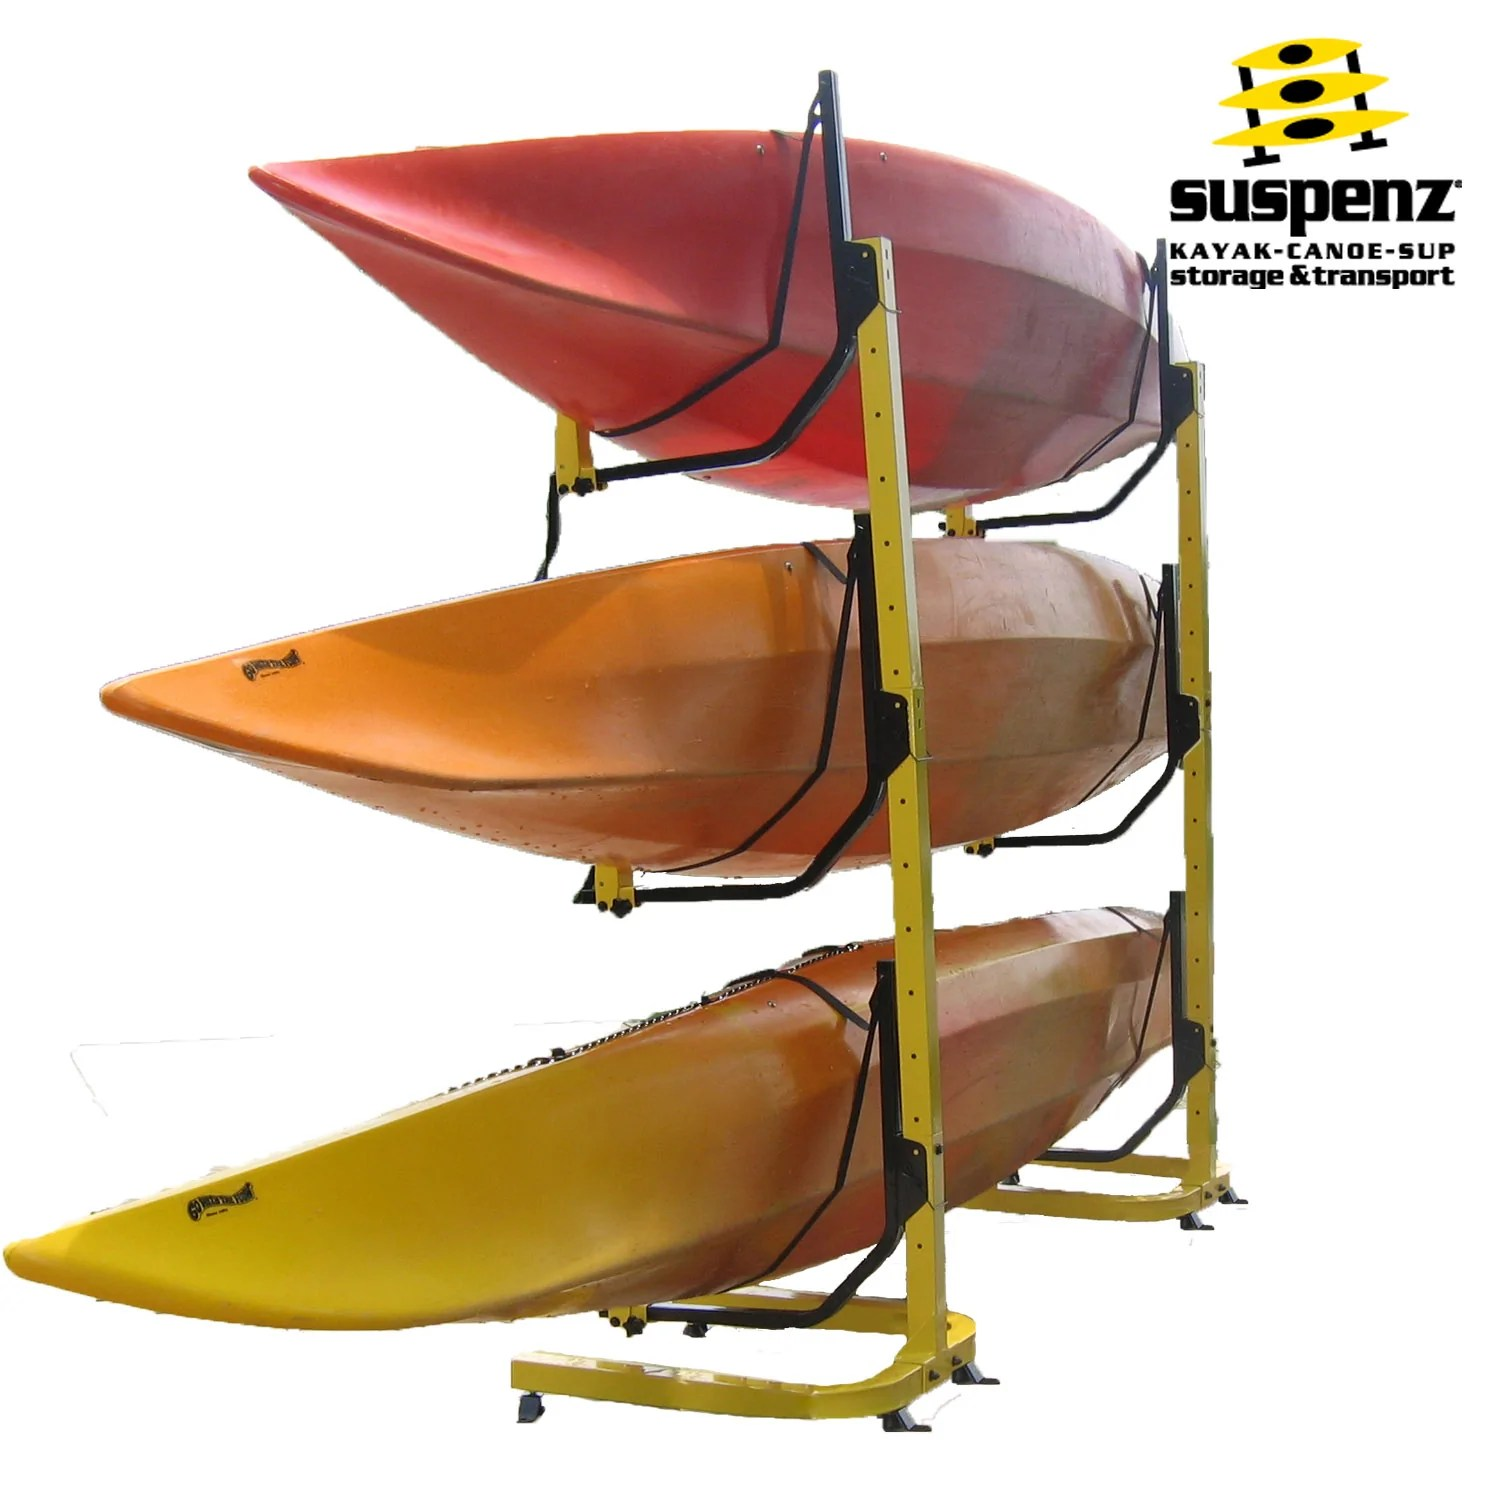 deluxe 3 boat free standing rack also available in black